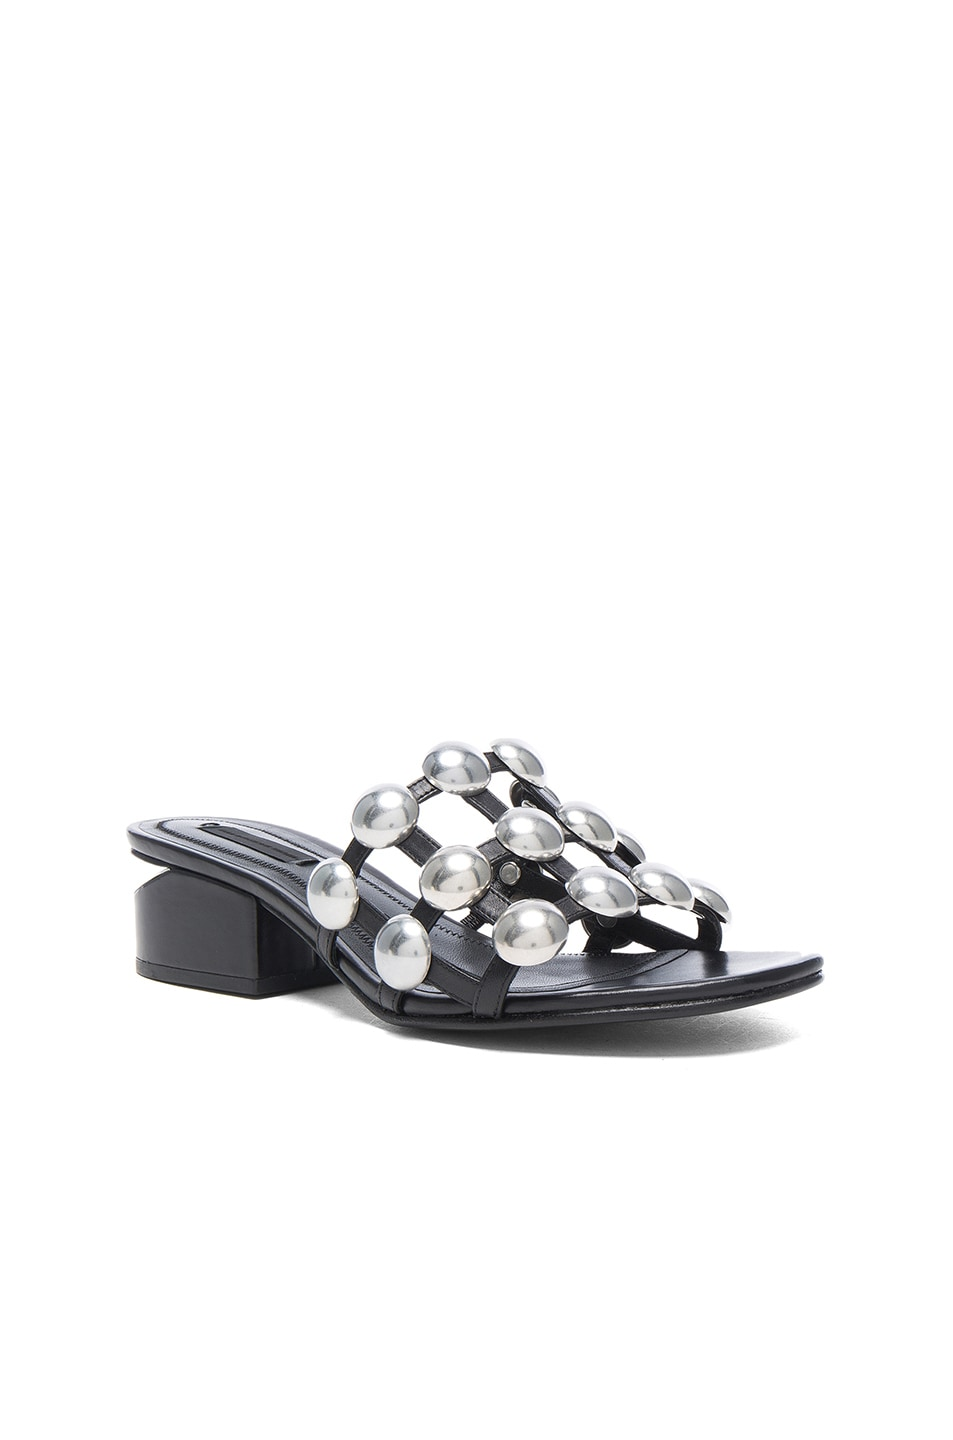 Image 2 of Alexander Wang Dome Stud Leather Lou Slides in Black